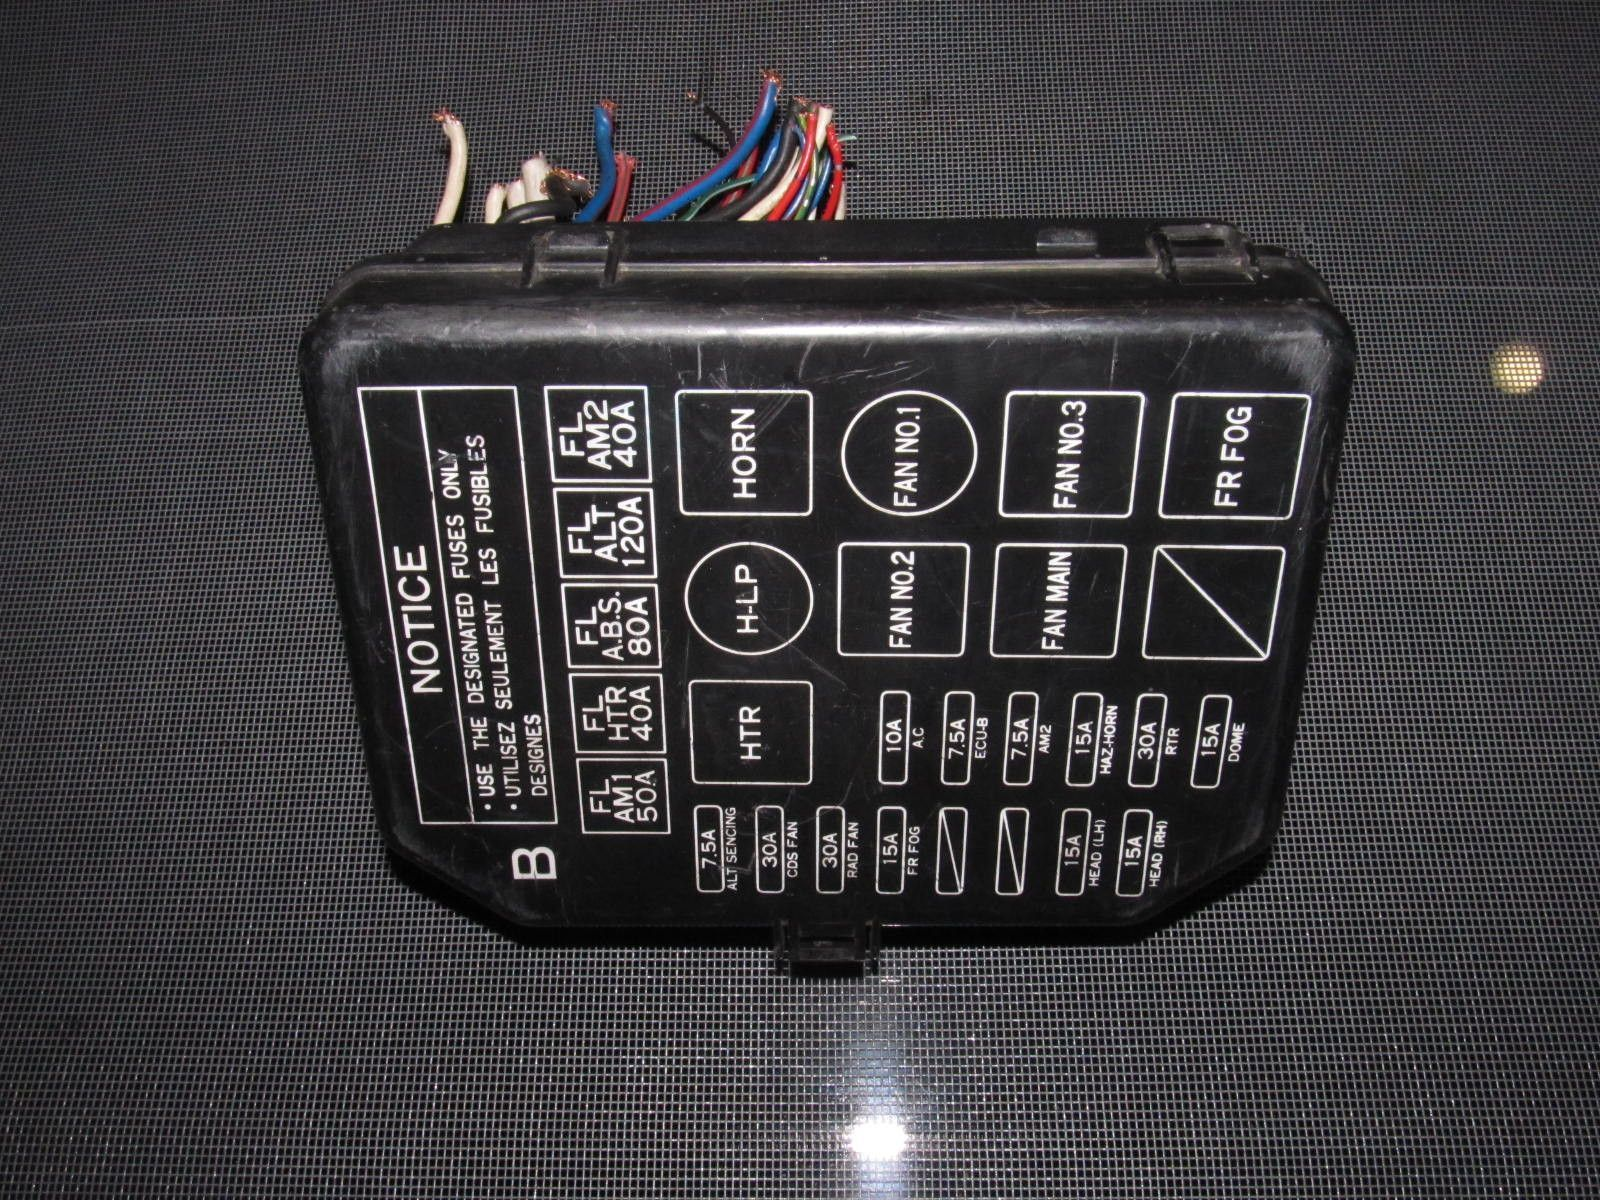 91 95 toyota mr2 oem interior fuse box products toyota mr2 and 91 95 toyota mr2 oem interior fuse box